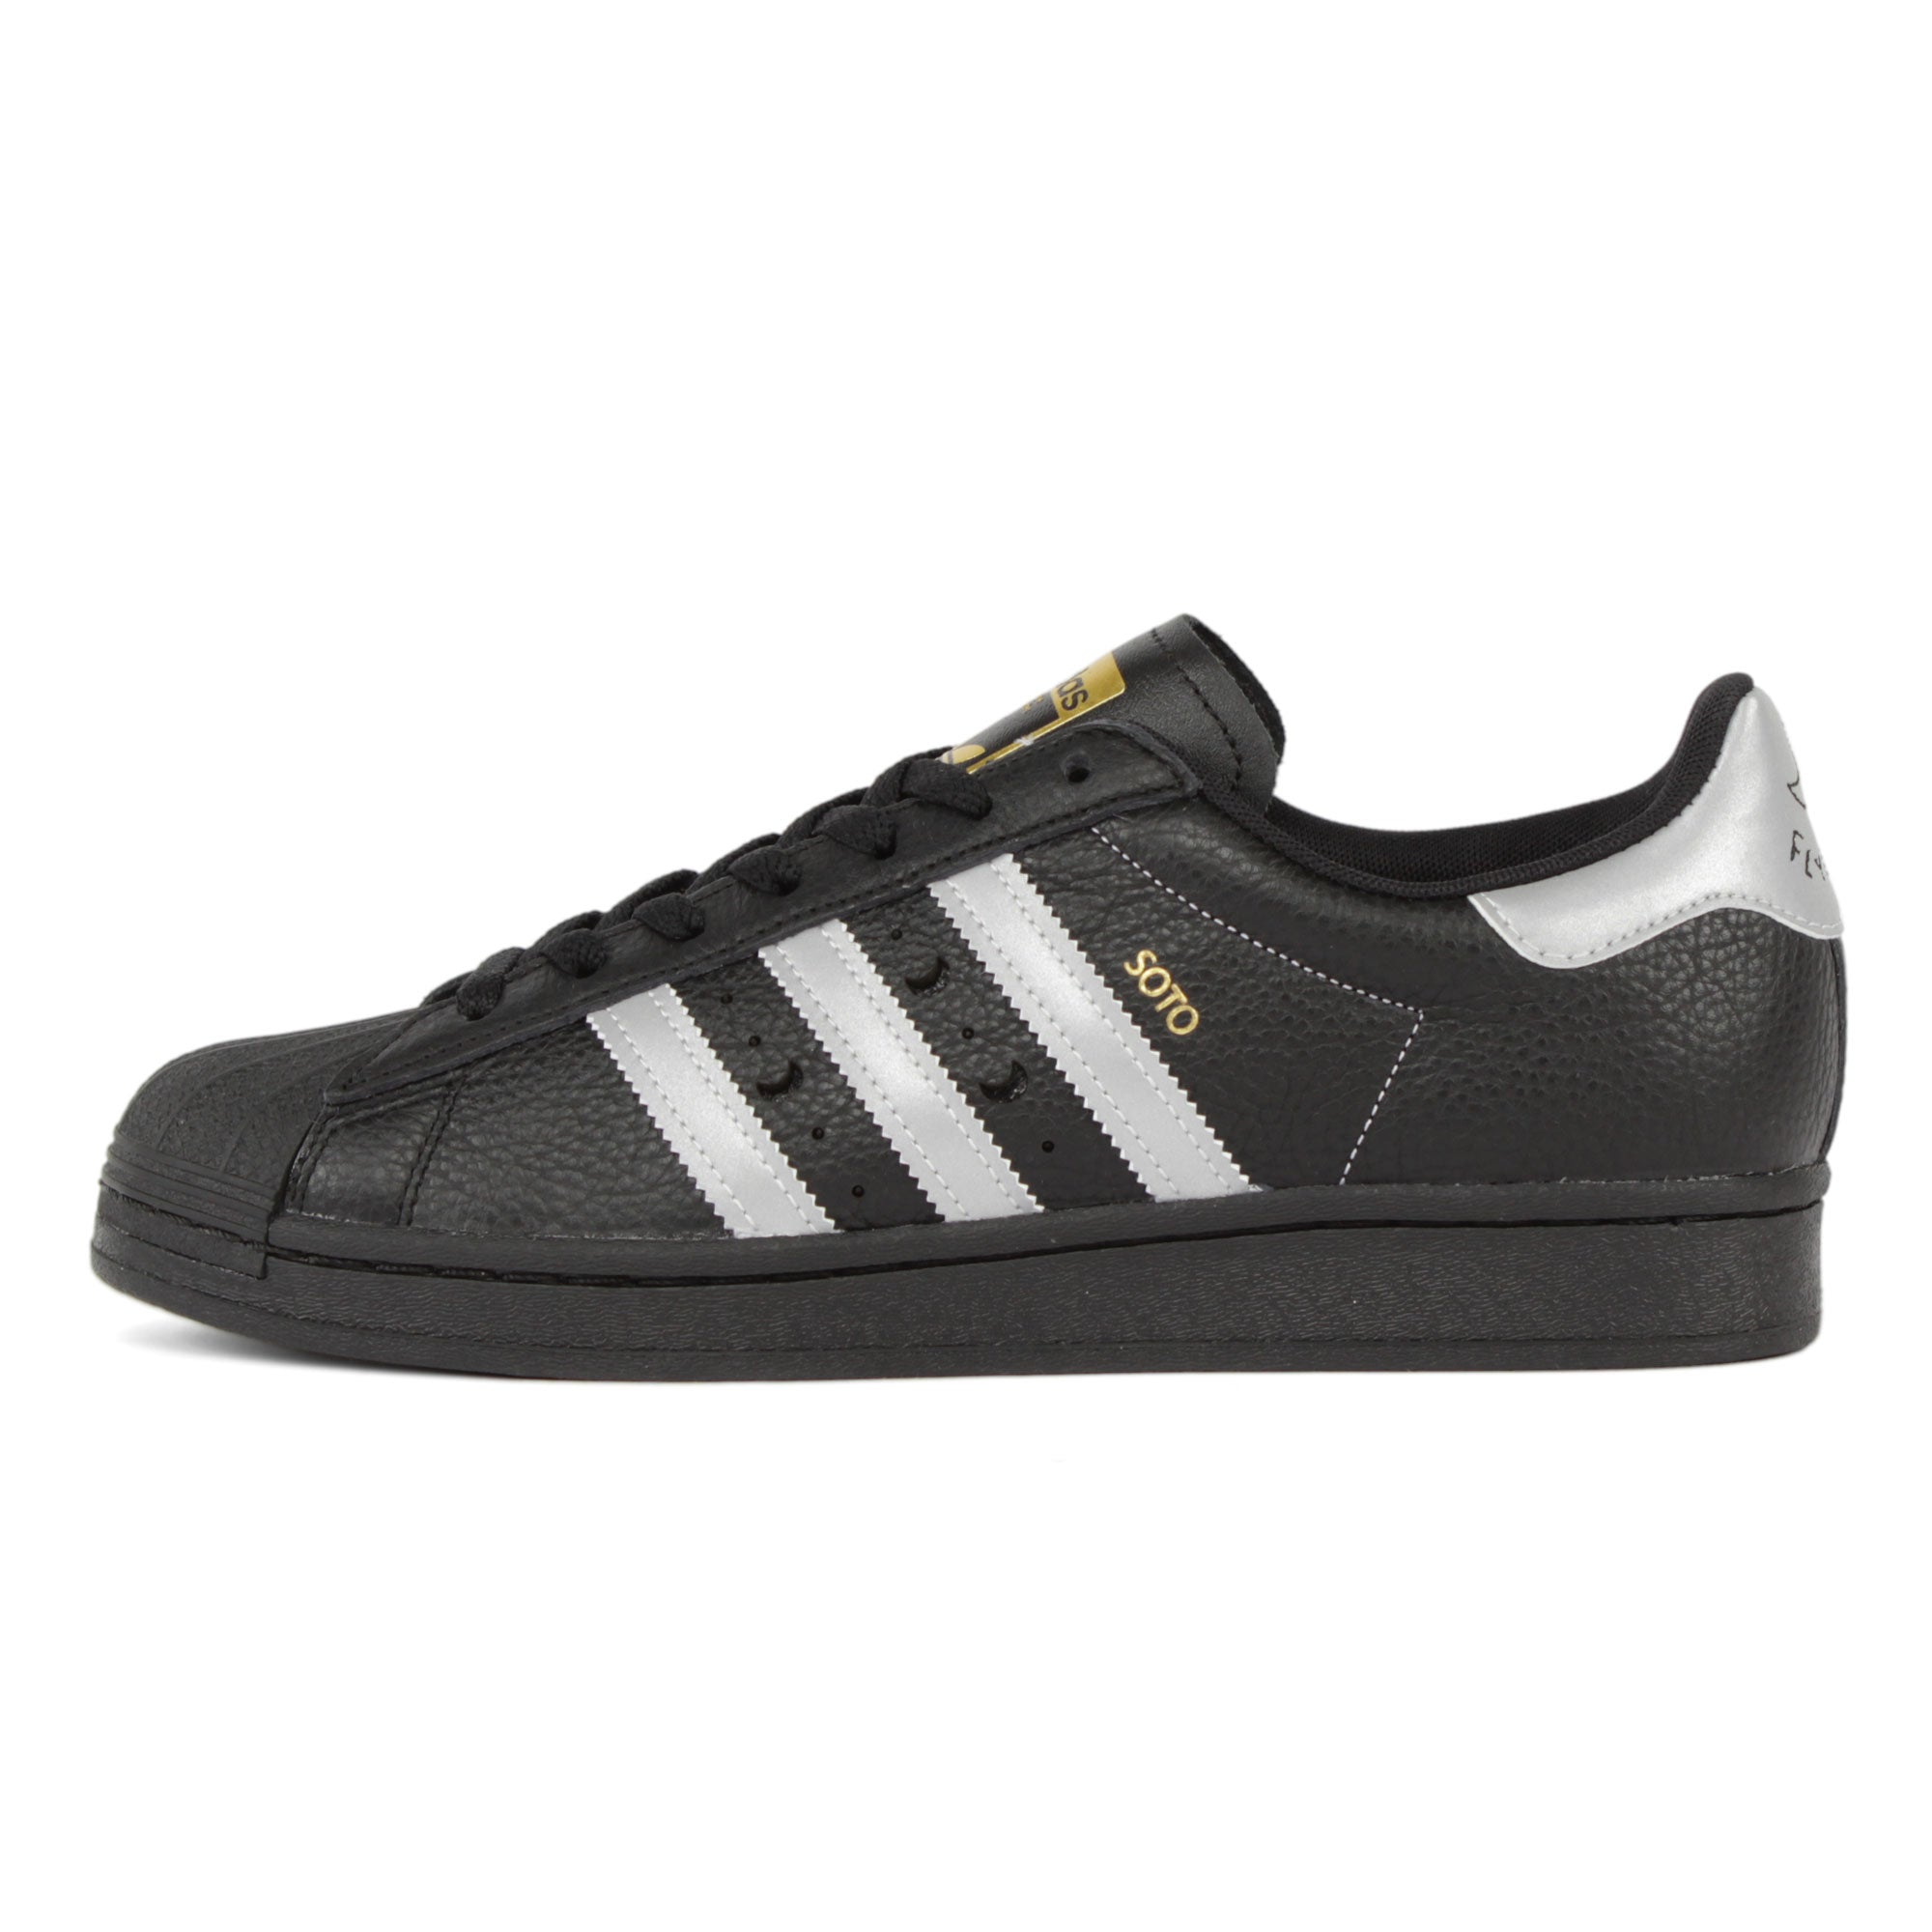 Adidas Superstar ADV x Soto Product Photo #1